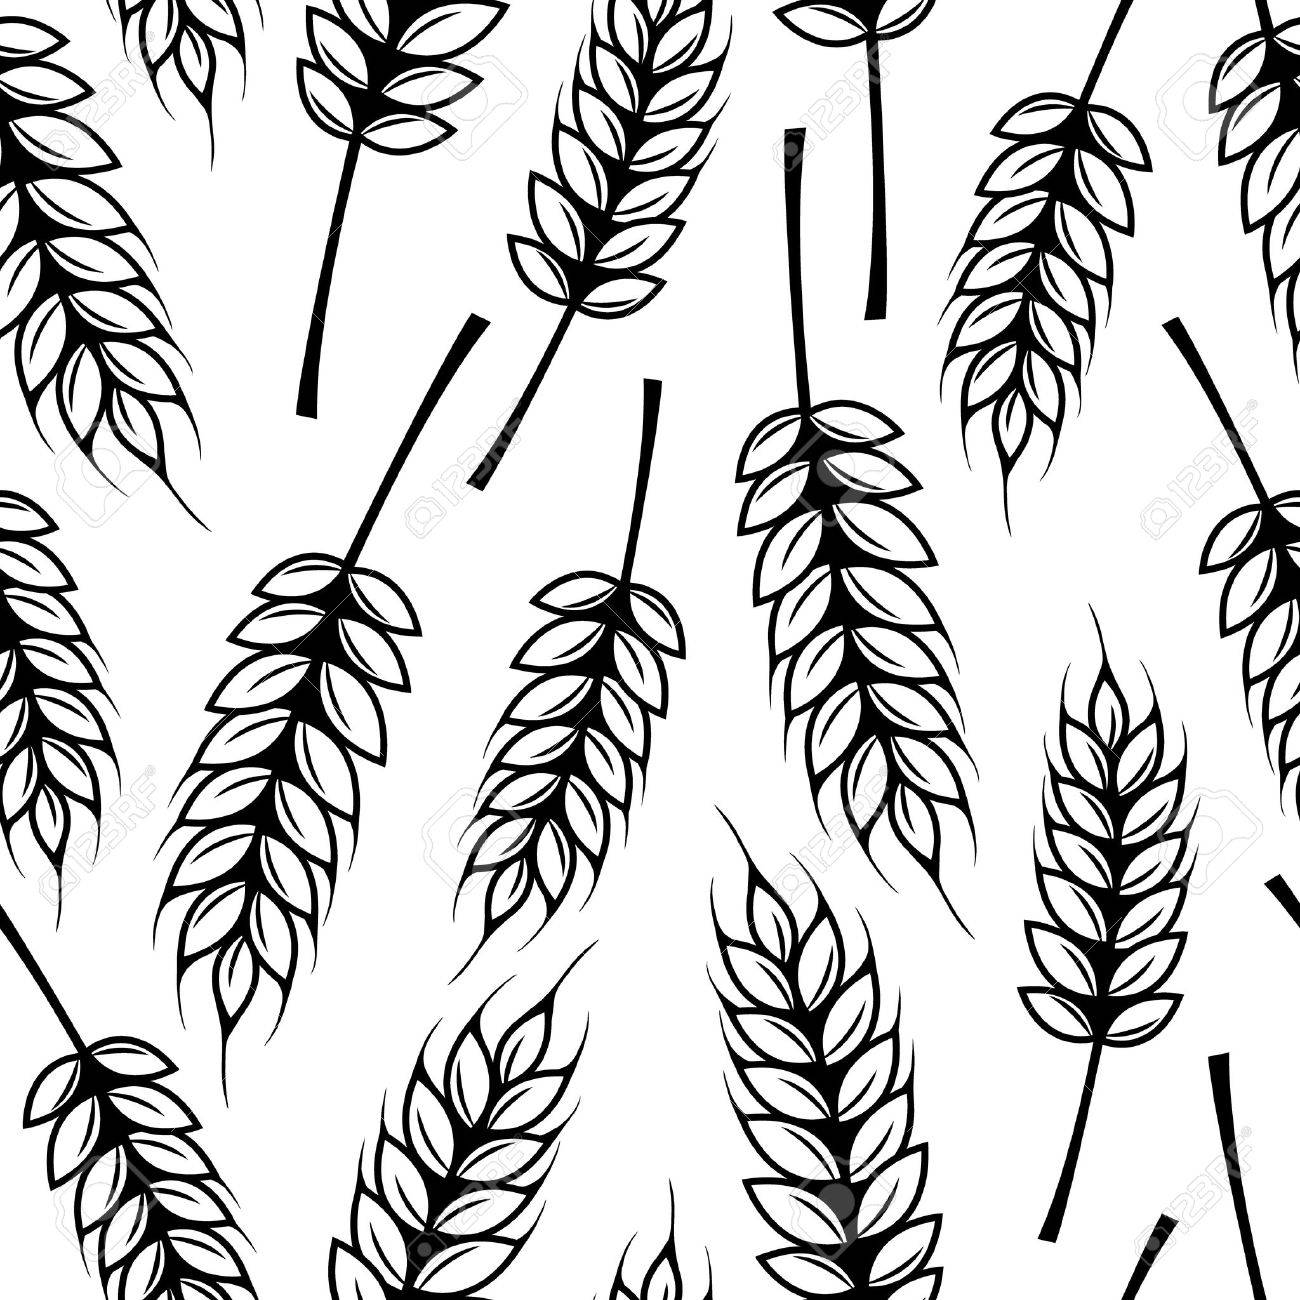 Seamless pattern with ears of wheat - 37074114